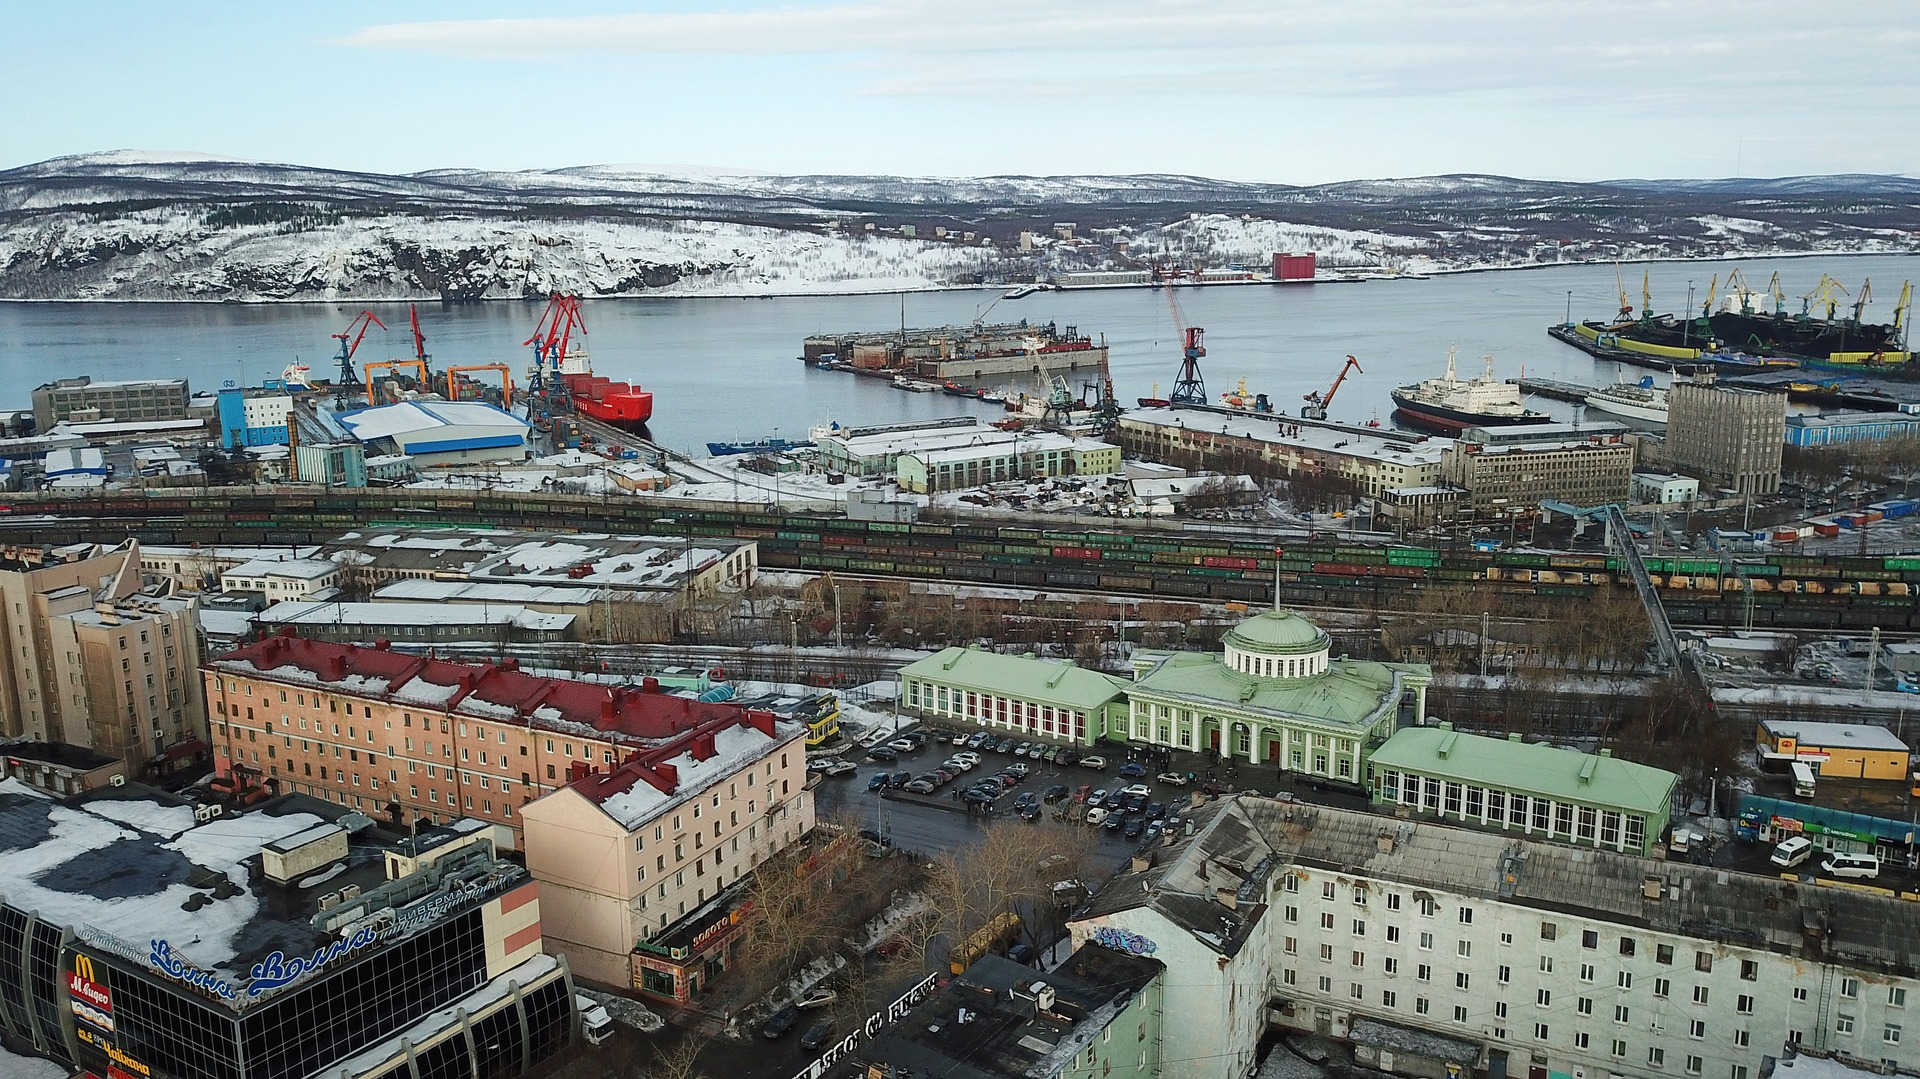 Murmansk_winter-3933694_1920.jpg